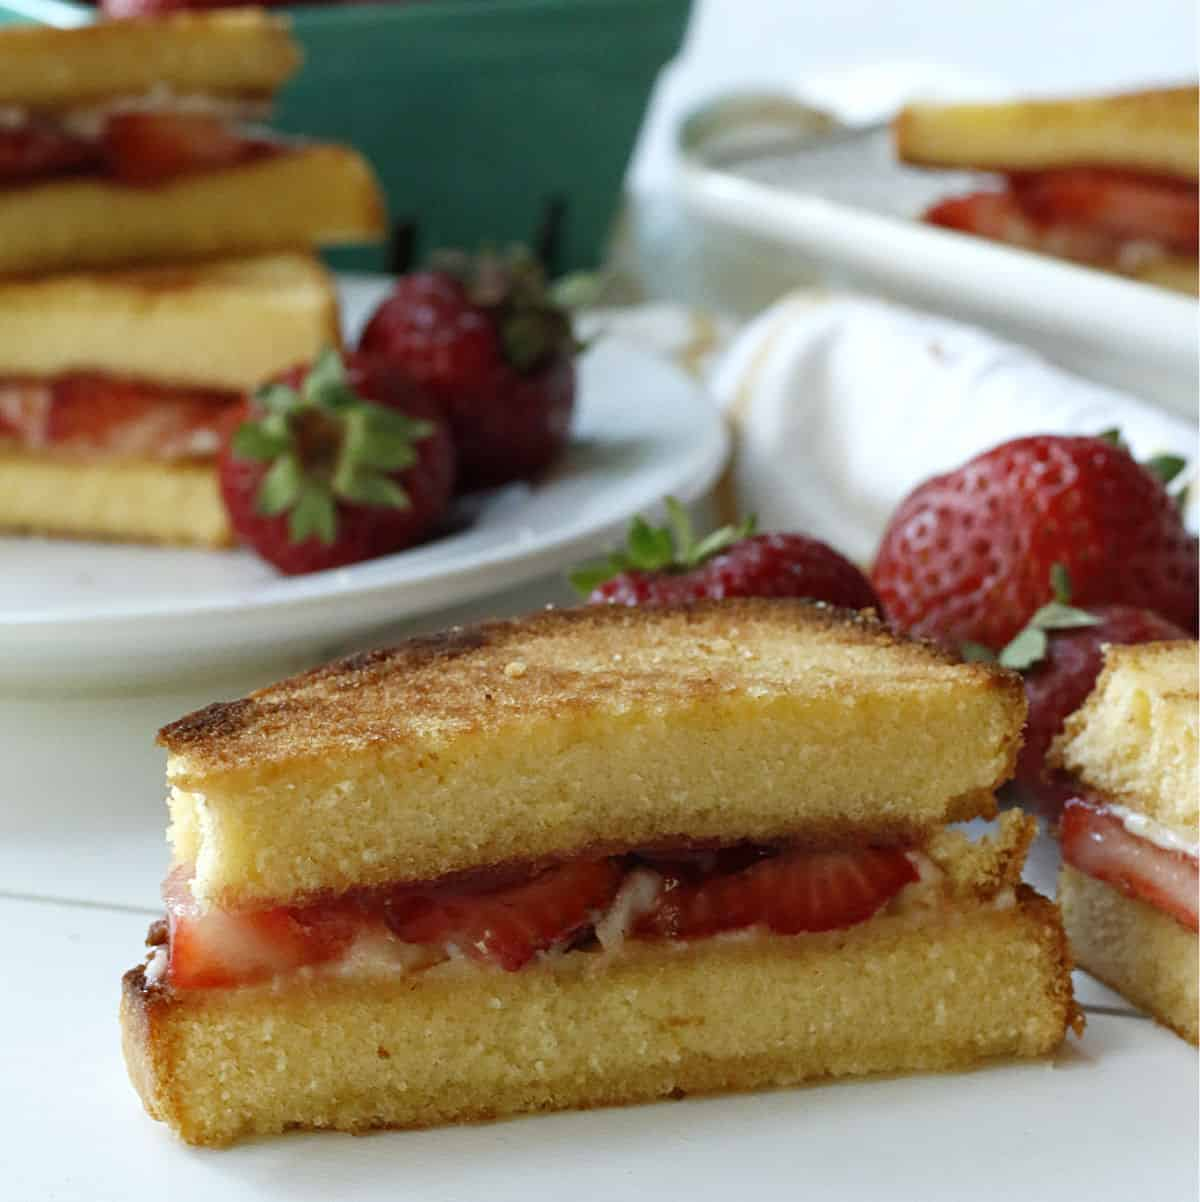 a slice of a dessert grilled cheese with strawberries